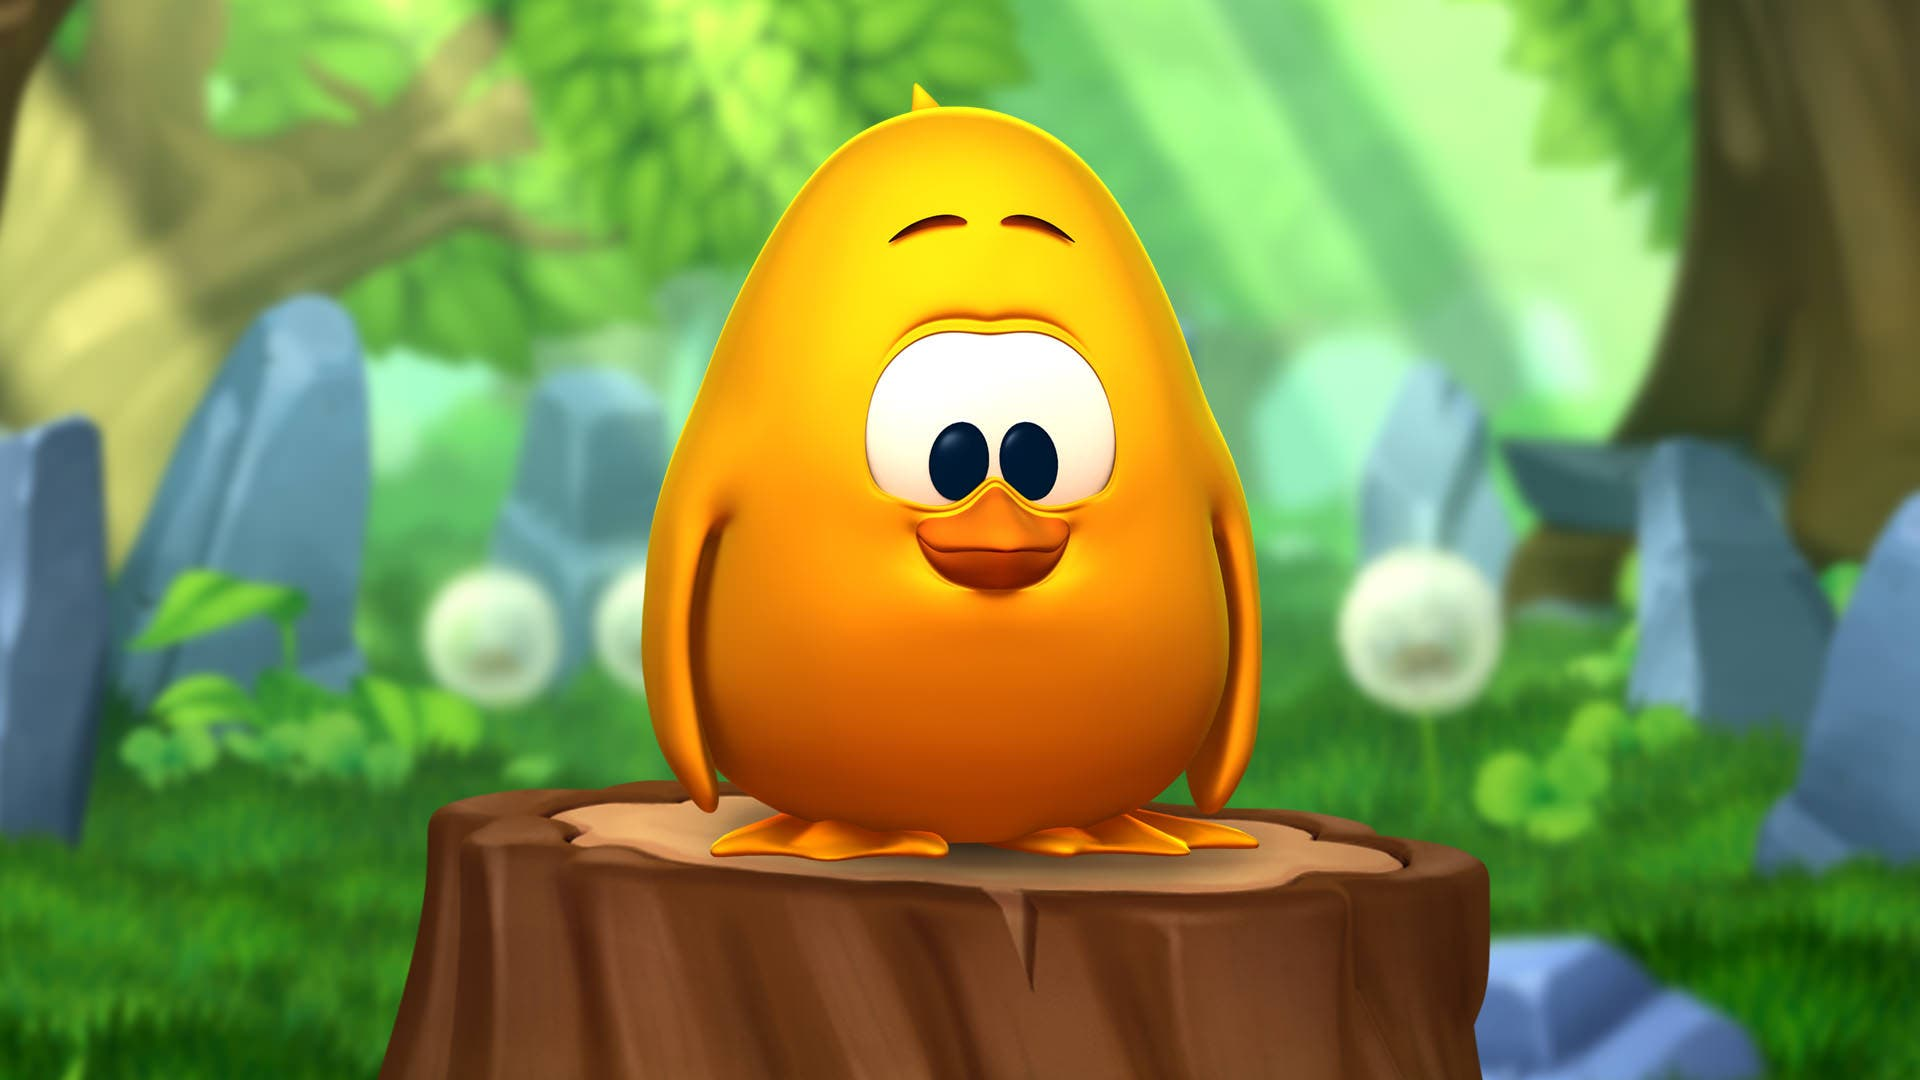 [Act.] Tráilers de la versión de Switch de Toki Tori 2+ y Happy Birthdays